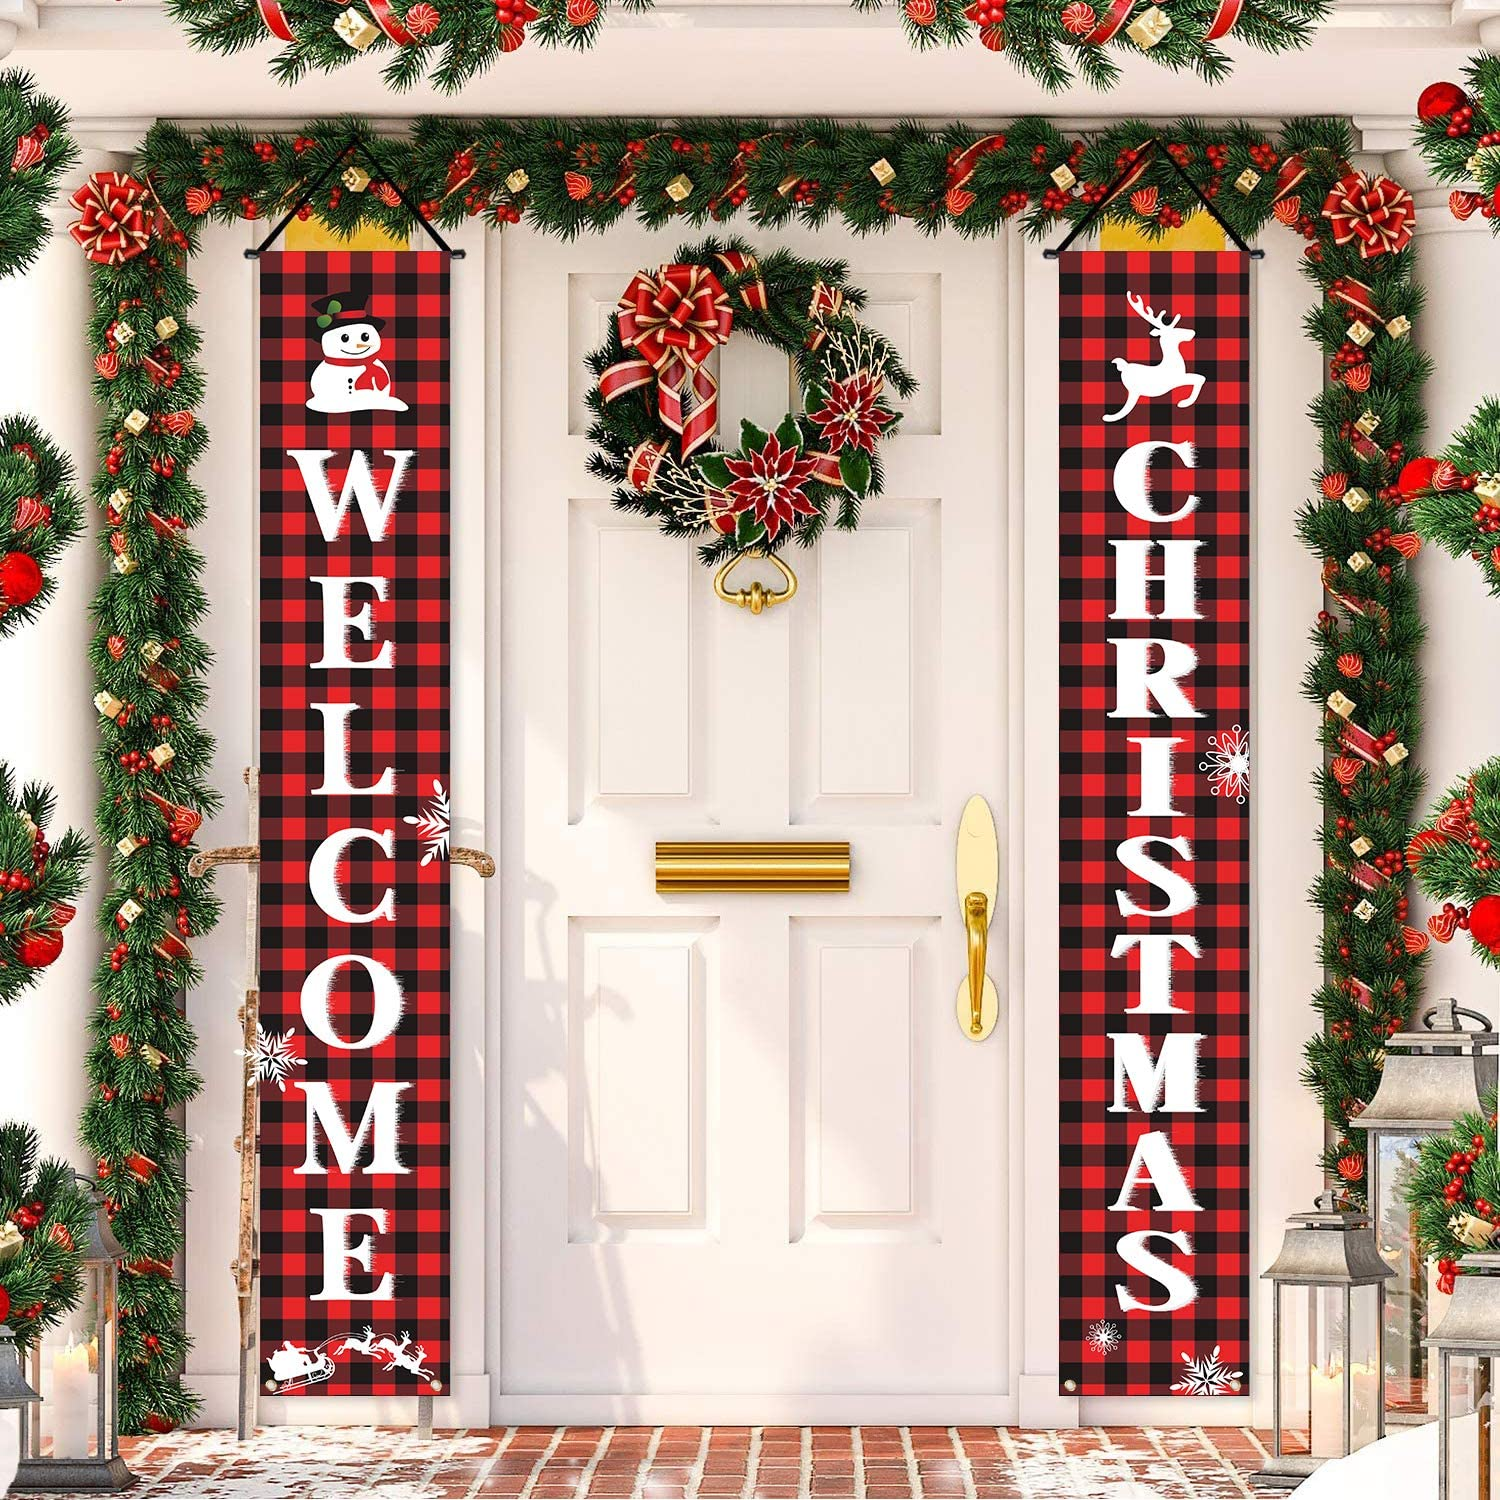 Christmas Porch Sign Outdoor Winter Decorations Welcome Porch Banner Xmas Hanging Decorations Holiday Party Door Hanging Flag Snowman Sled Snowflake Elk Merry Christmas Decor for Home Indoor Yard